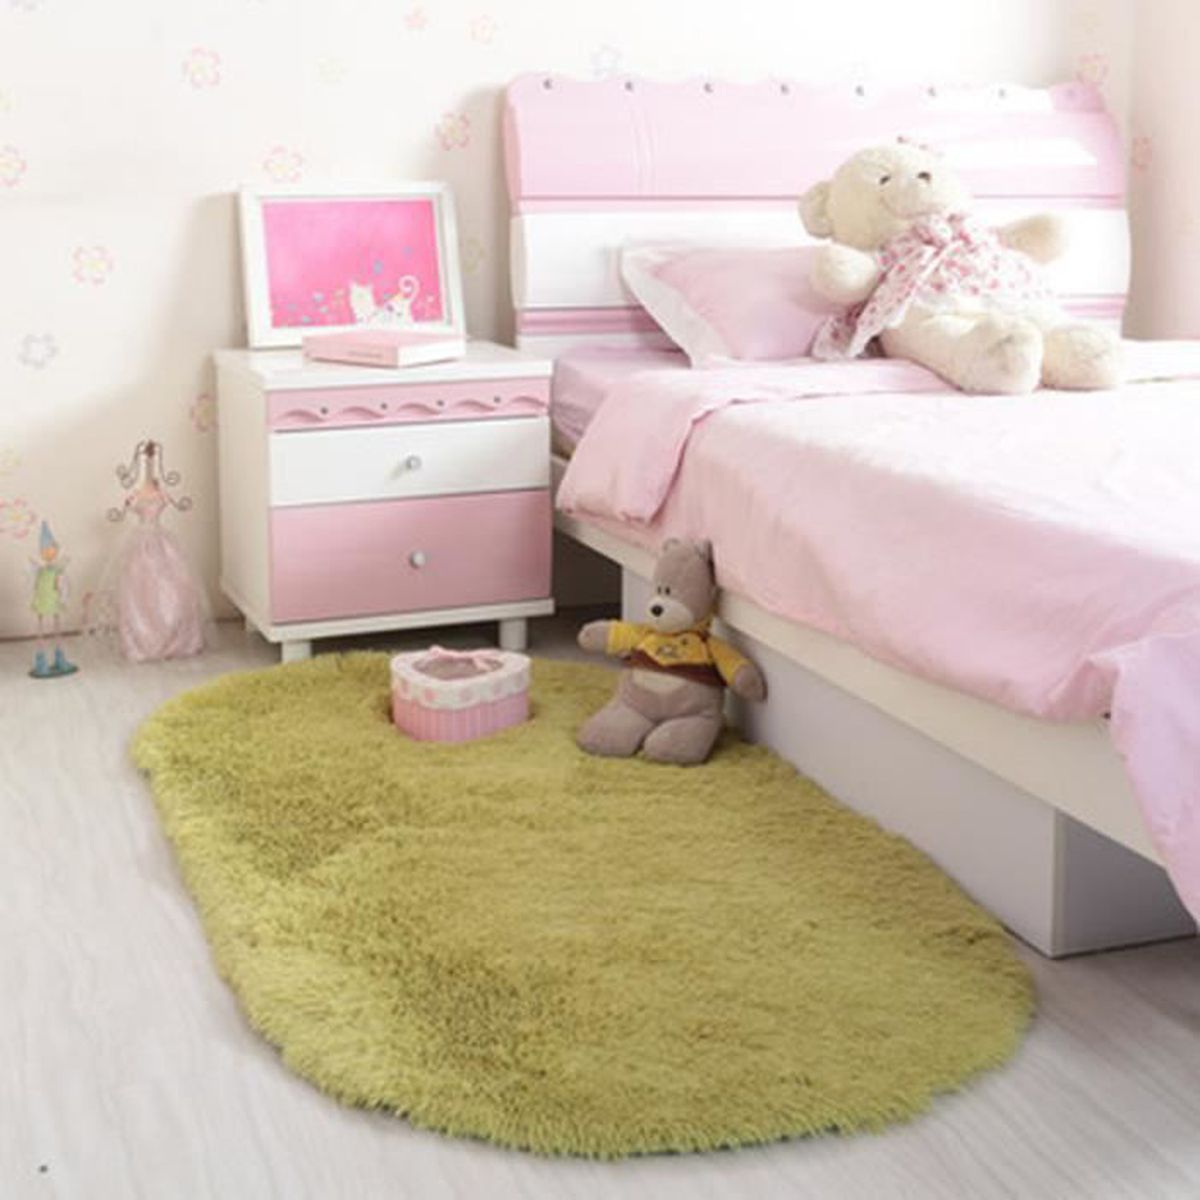 Tapis chambre enfant fille top tapis rond enfant toile - Tapis chambre bebe fille pas cher ...